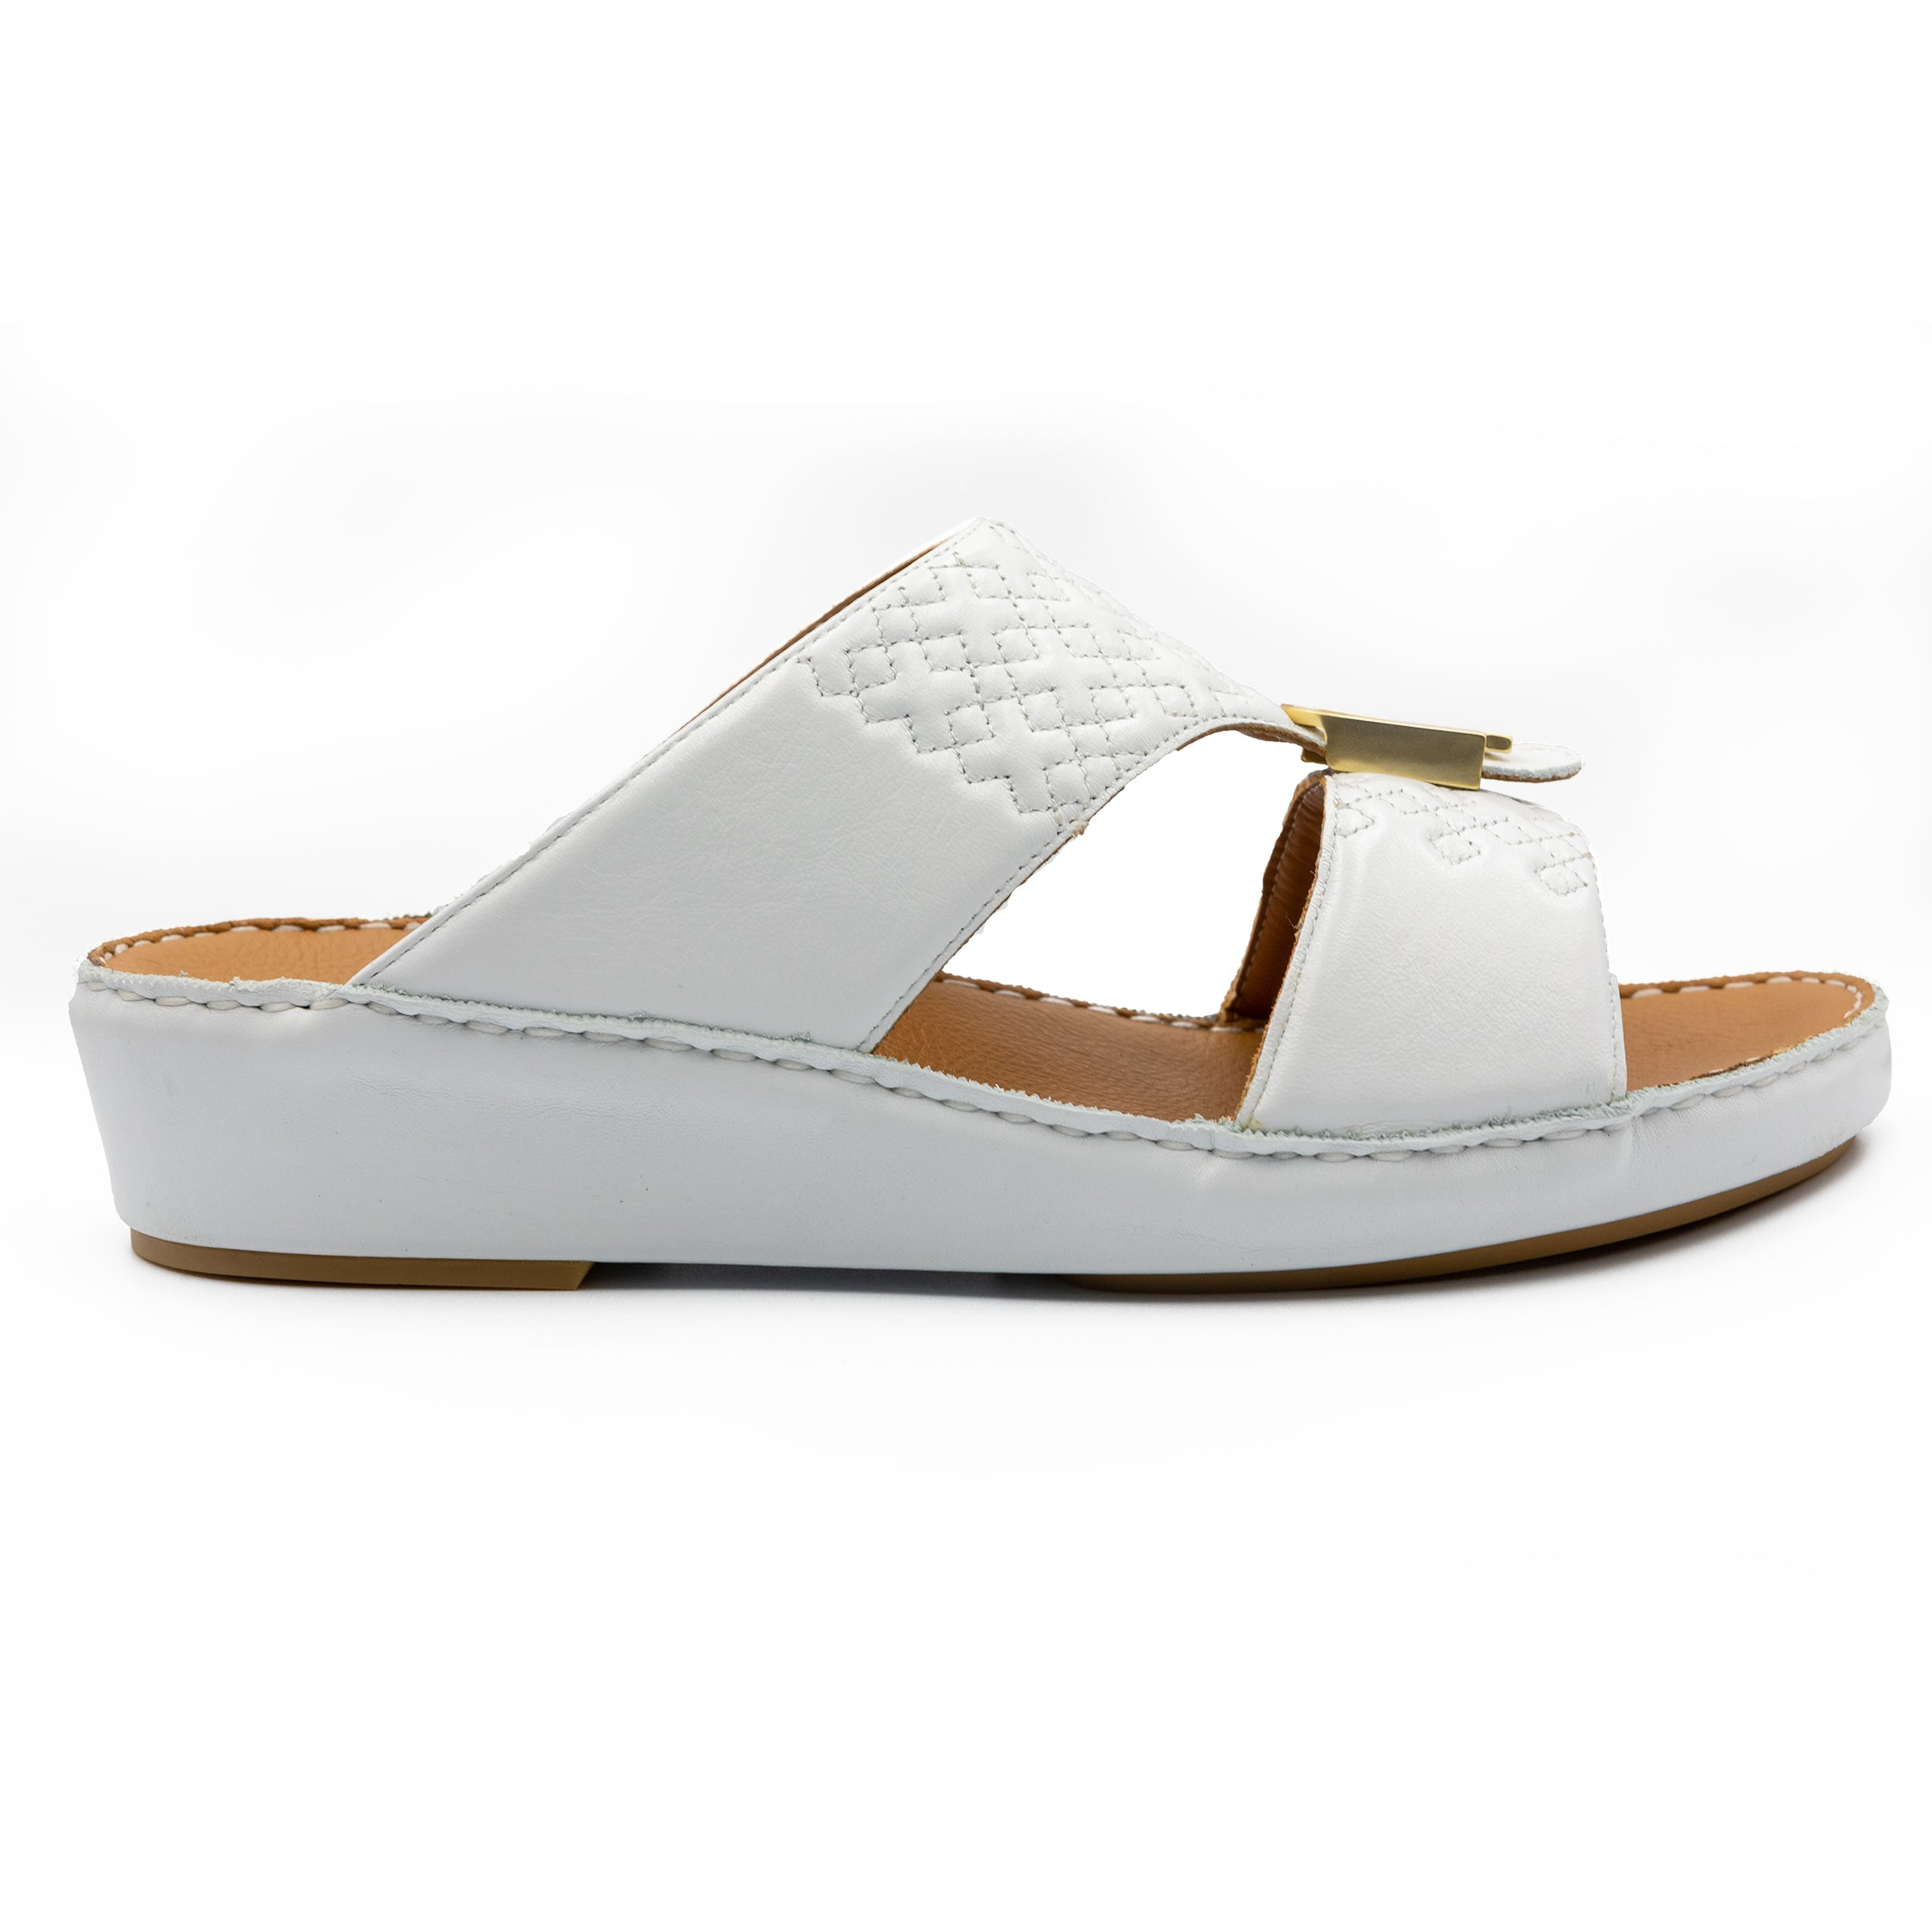 White, square, stiched, Flat, Sandals, Arabic, Sandal, Ramadan, Collection, Accessories